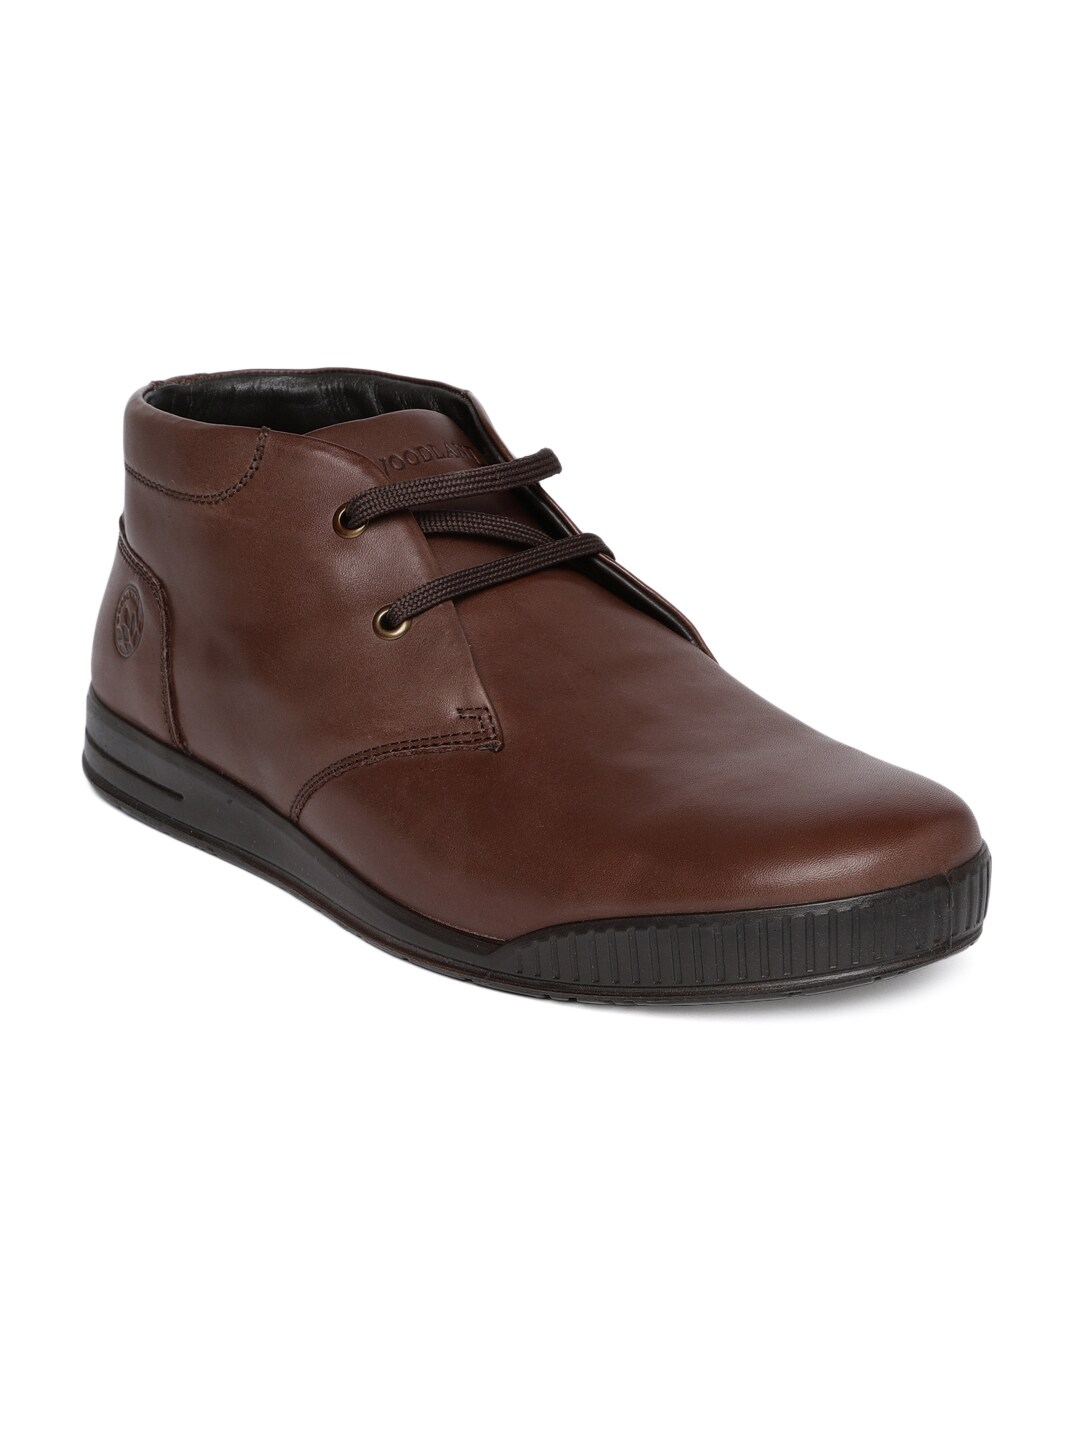 af4a15db4d34c6 Woodland Shoes - Buy Genuine Woodland Shoes Online At Best Price - Myntra